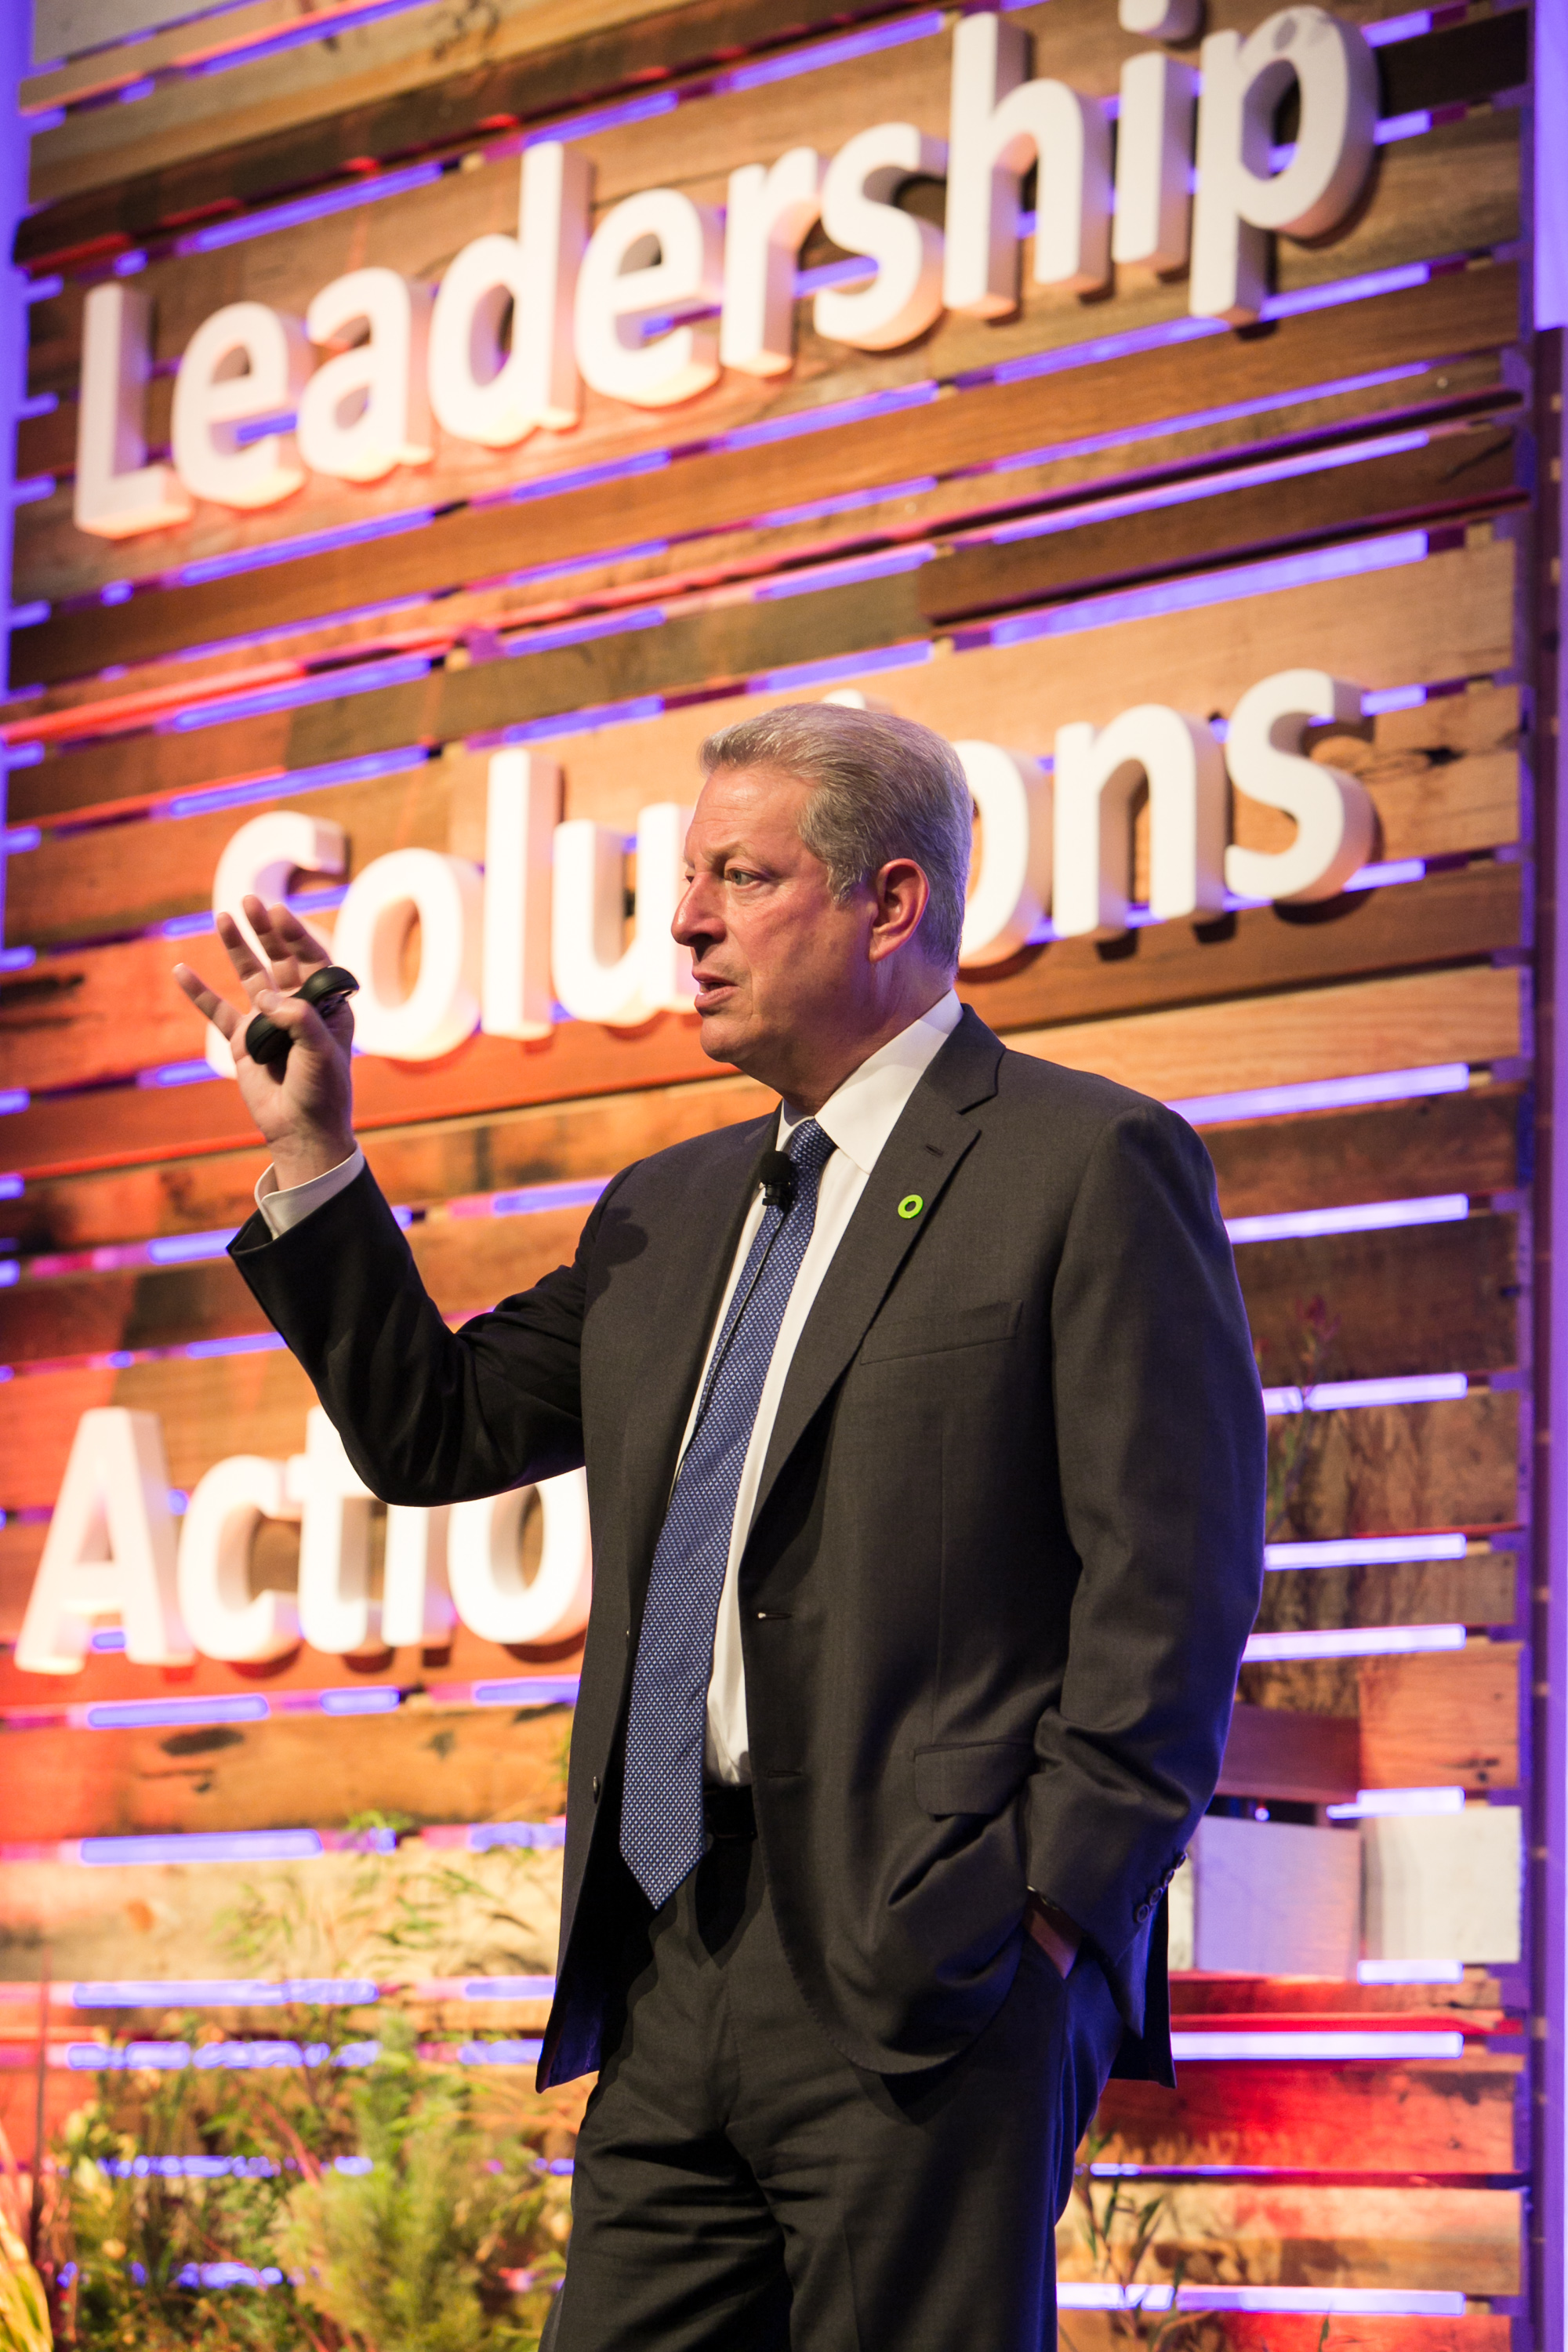 al gore leadership style Allocate al gore's outcomes and influences in the specific and general  environment  the definitive styles, characteristics, or personality traits of great  leaders.